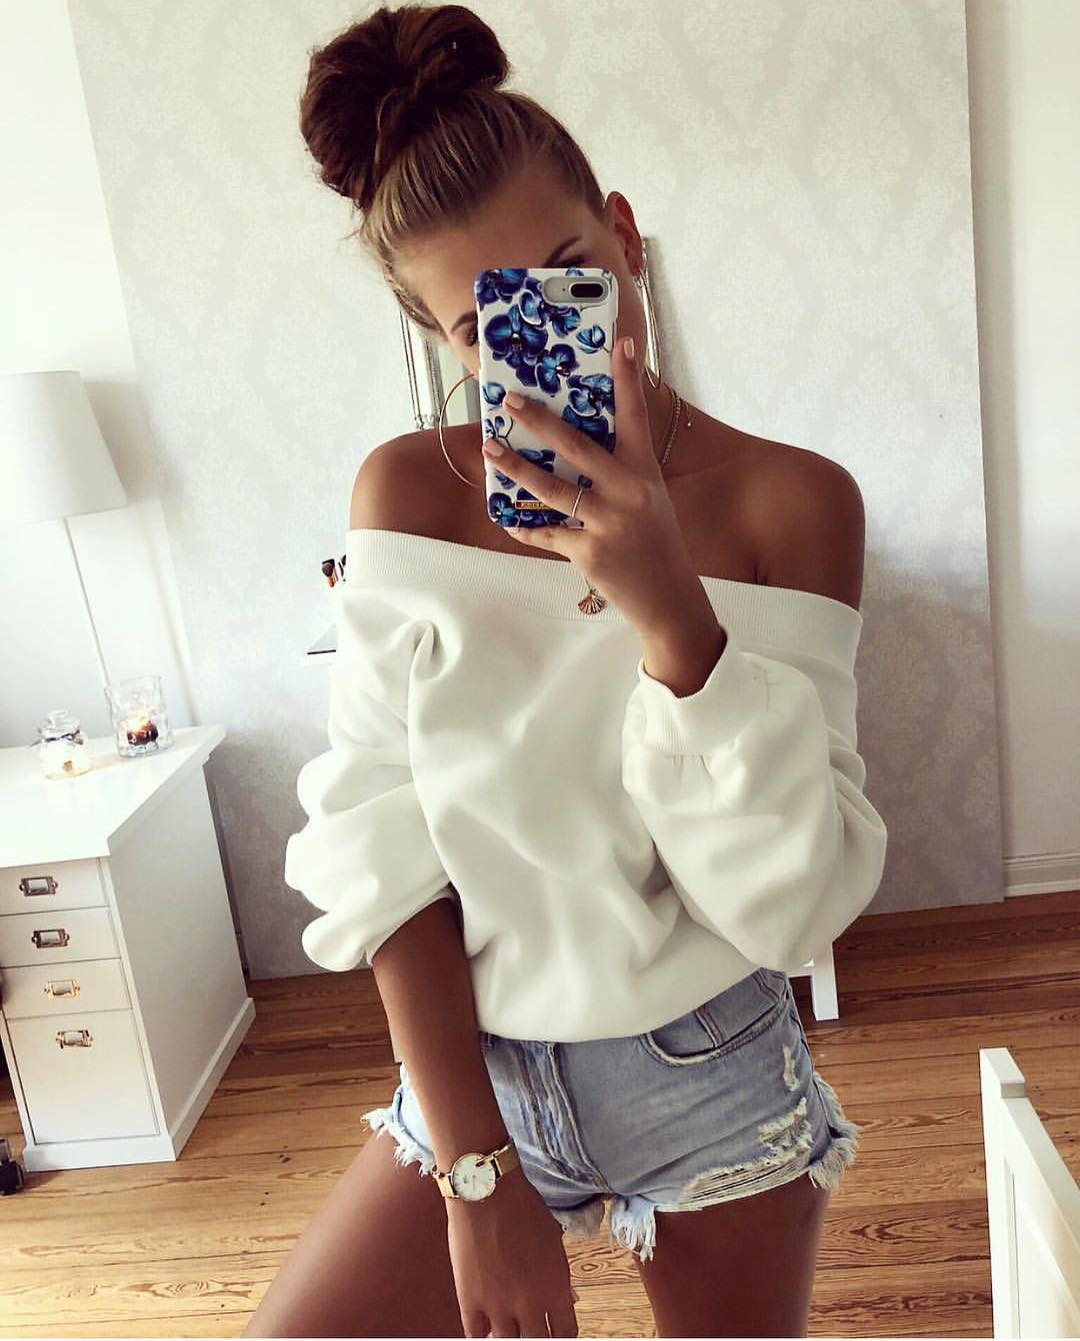 Off-Shoulder White Sweatshirt And Wash Blue Ripped Denim Shorts For Summer 2019